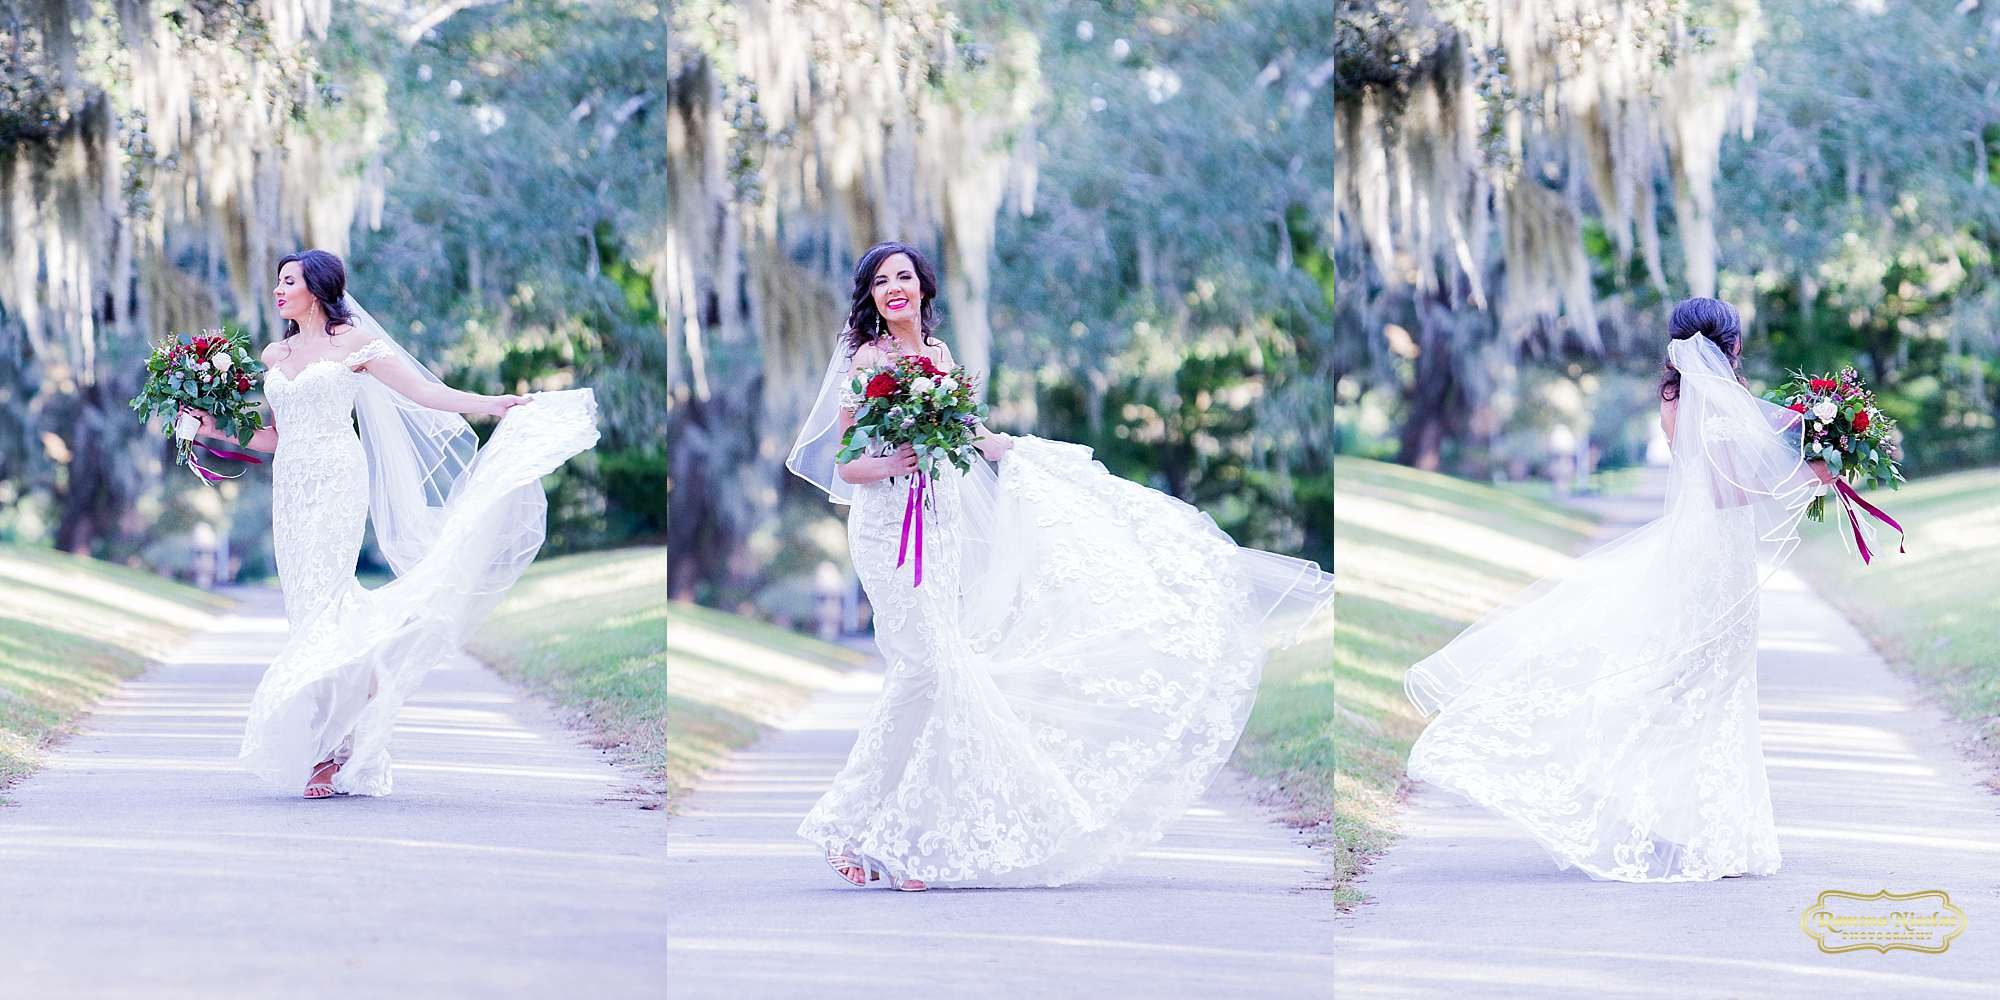 bride laughing and spinning twirling in her wedding dress with red flowers at brookgreen gardens by ramona nicolae photography myrtle beach wedding photographer-7.jpg